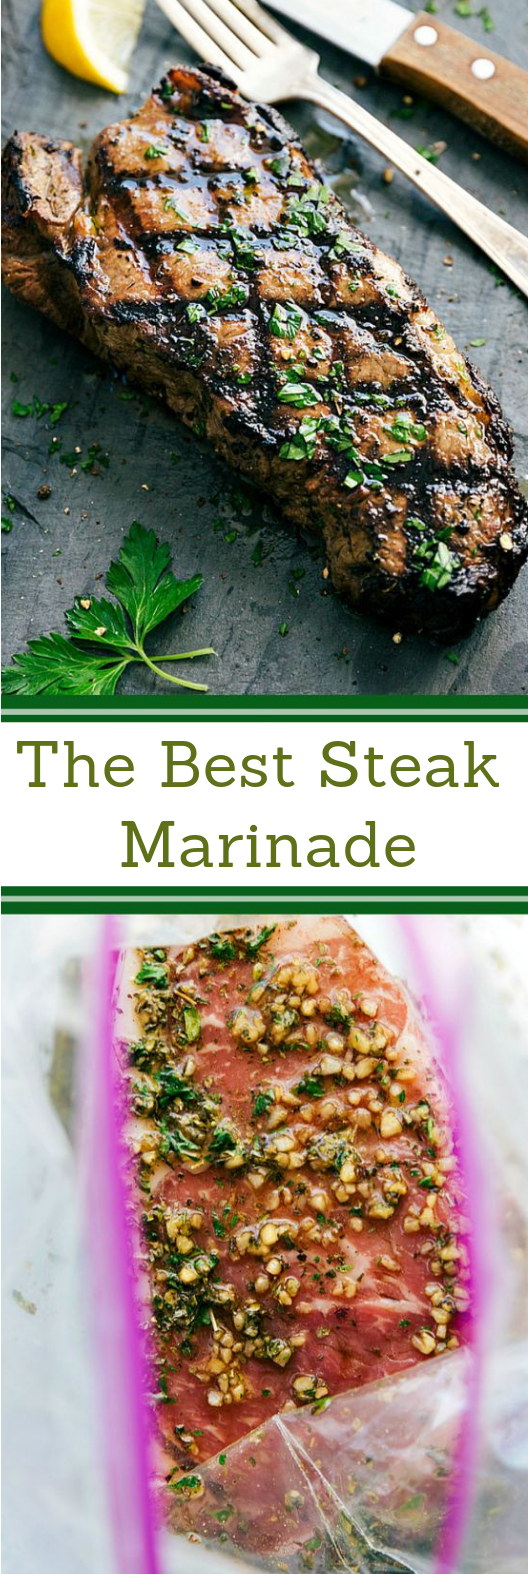 Easy Steak Marinade #dinner #steak